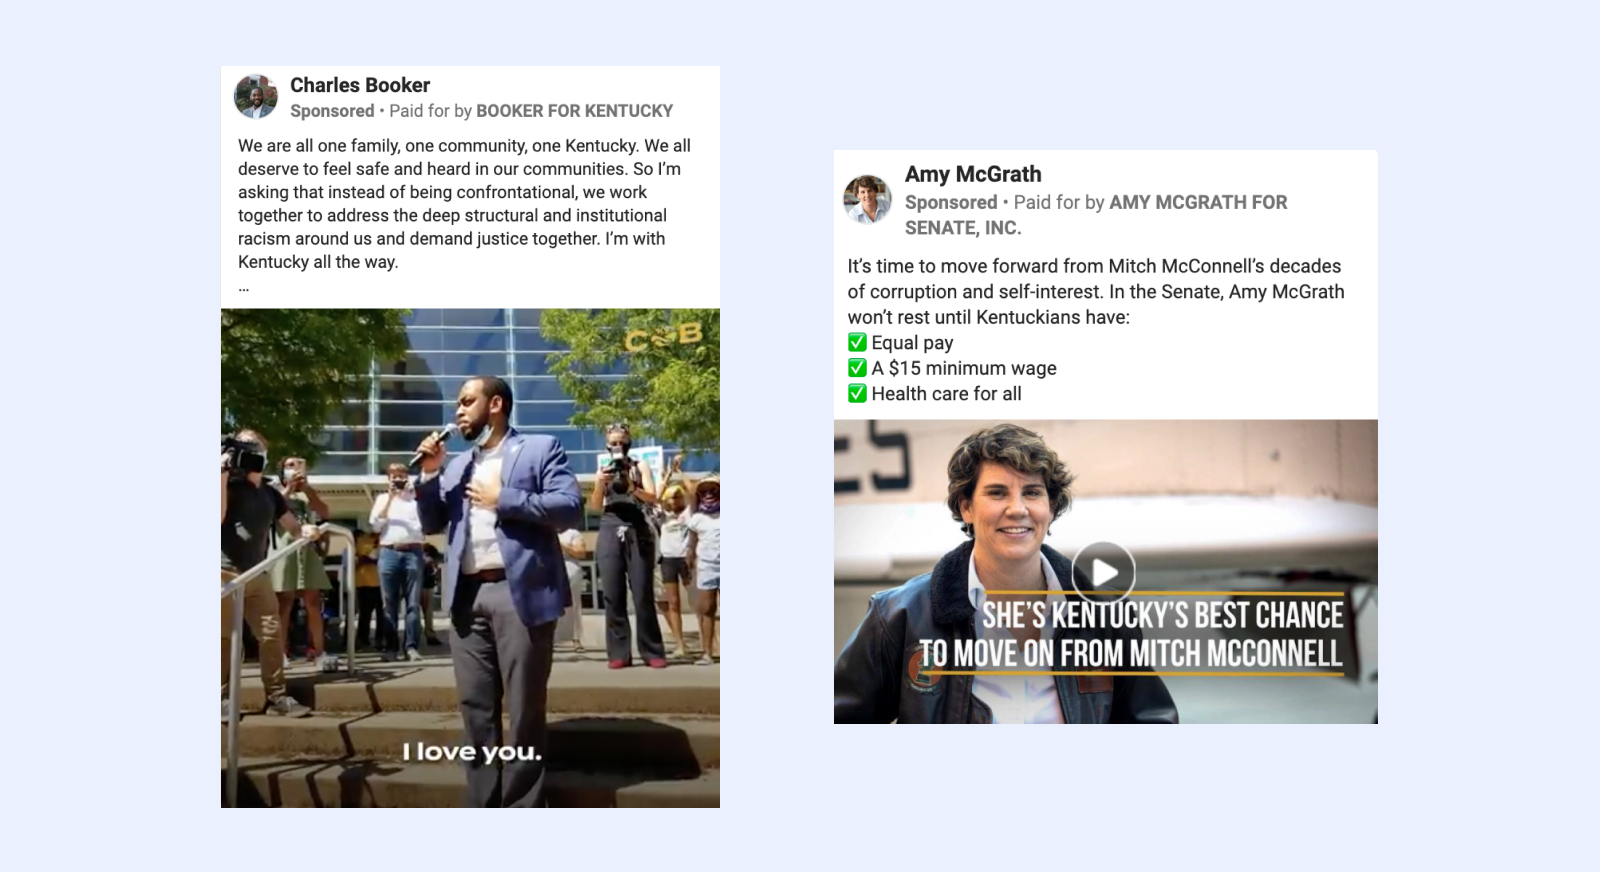 Facebook ads from Charles Booker and Amy McGrath